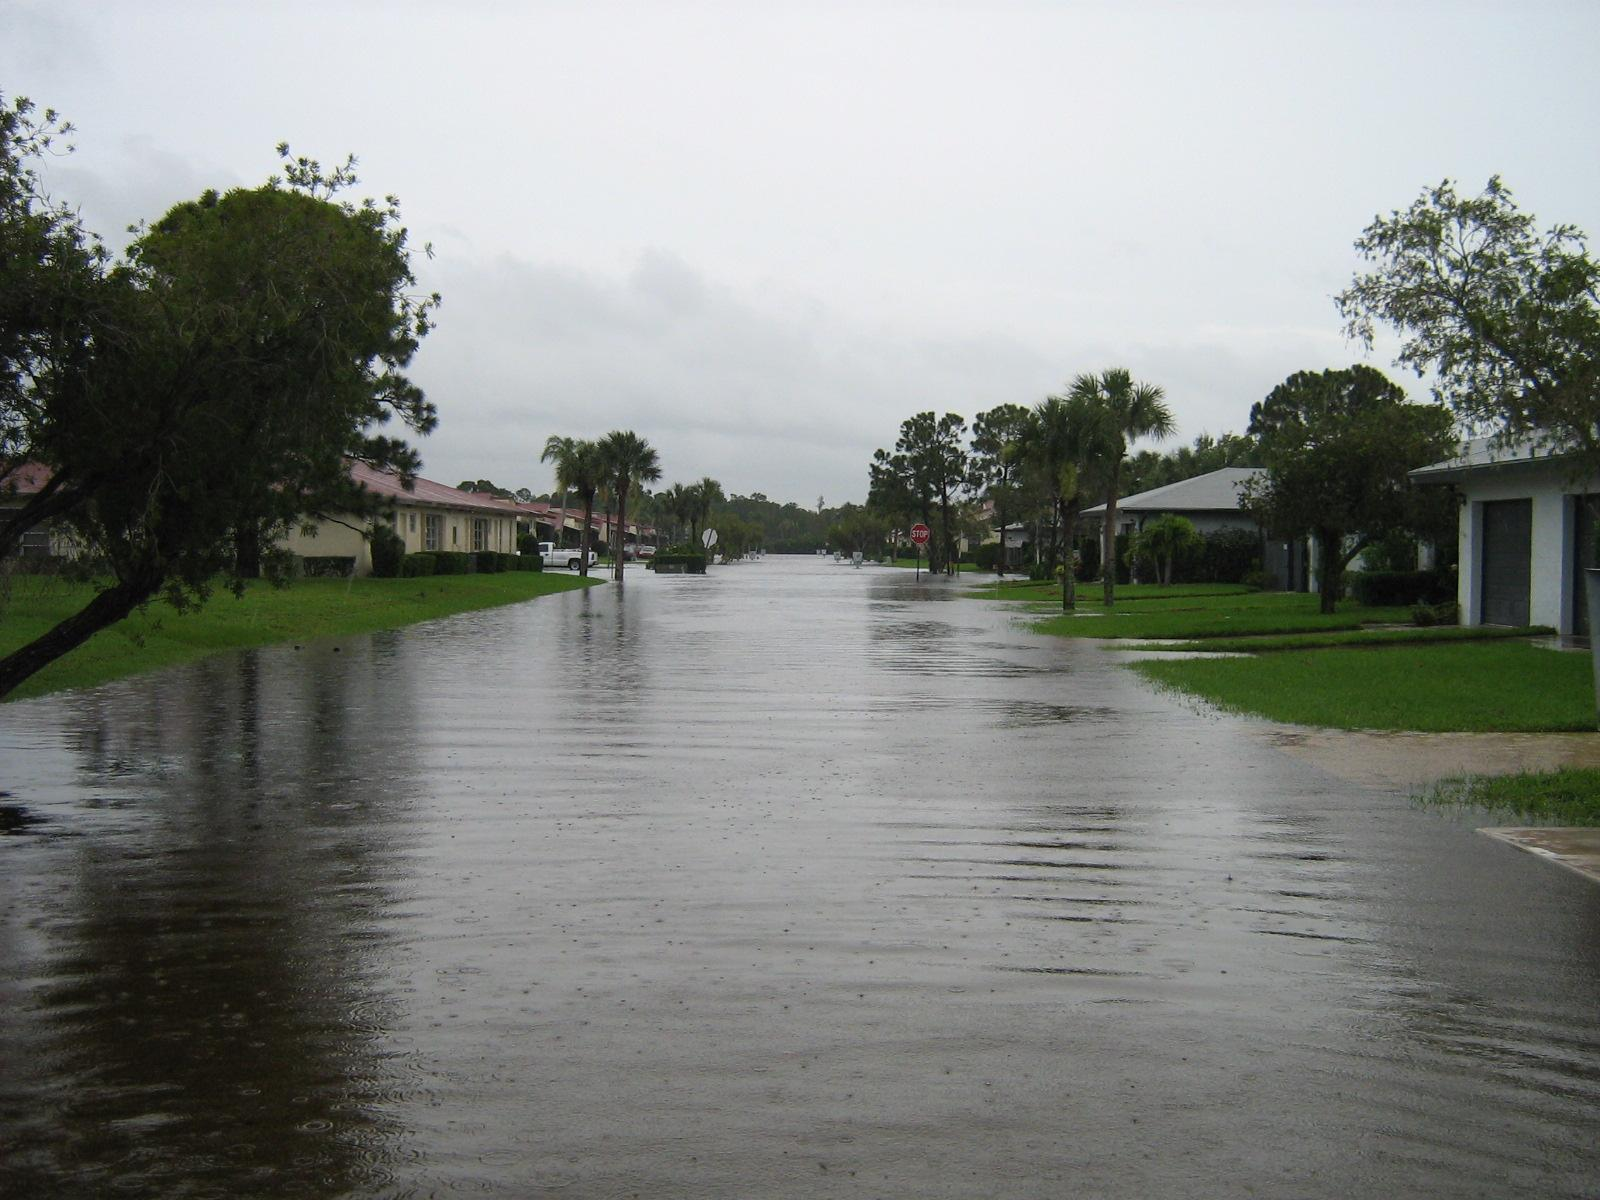 My pictures of the flood caused by Fay Img_0410